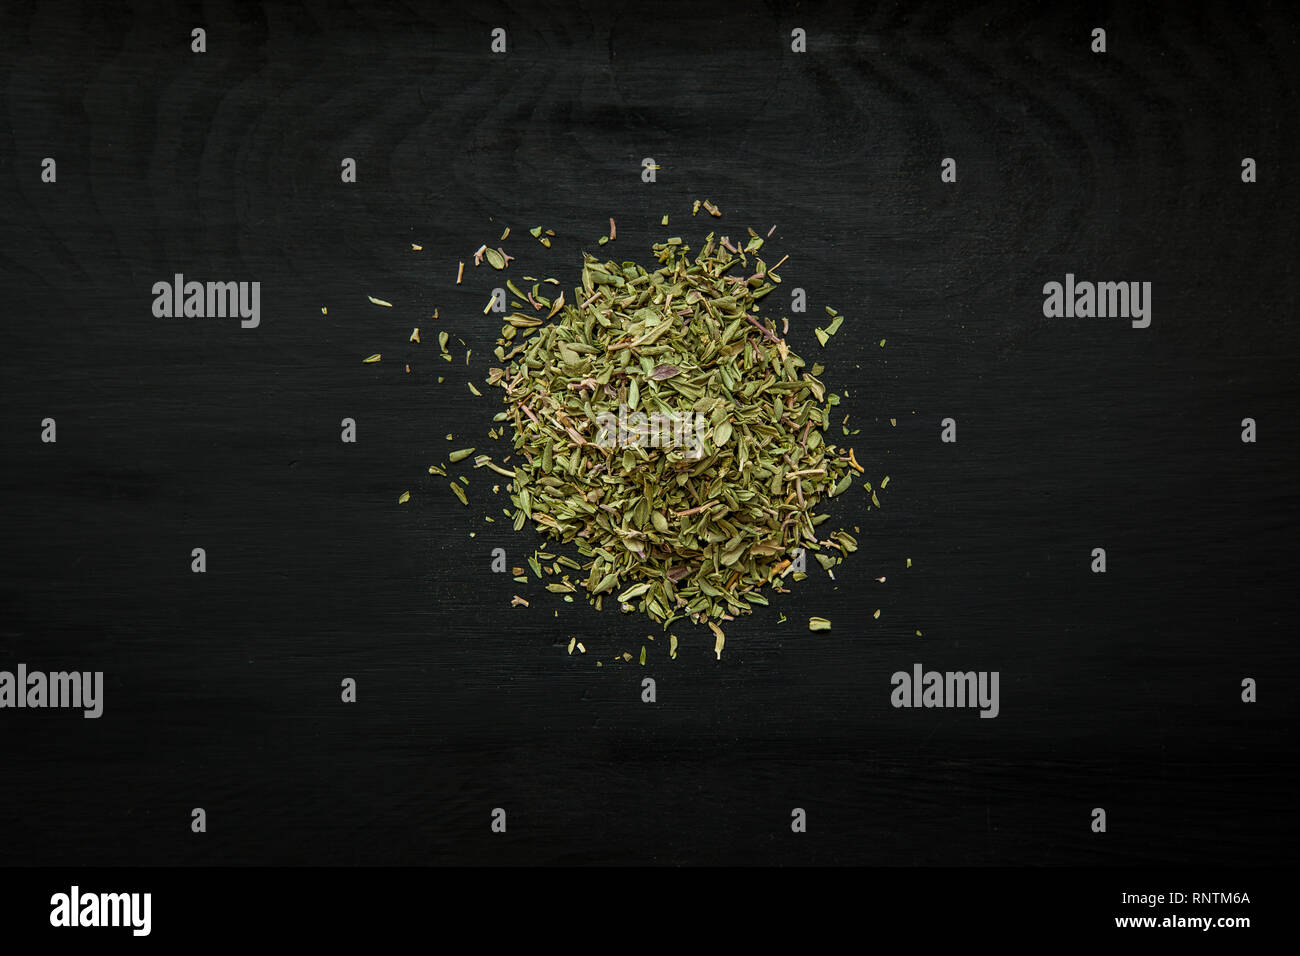 Close-up image of dried thyme on black wood background, view above - Stock Image